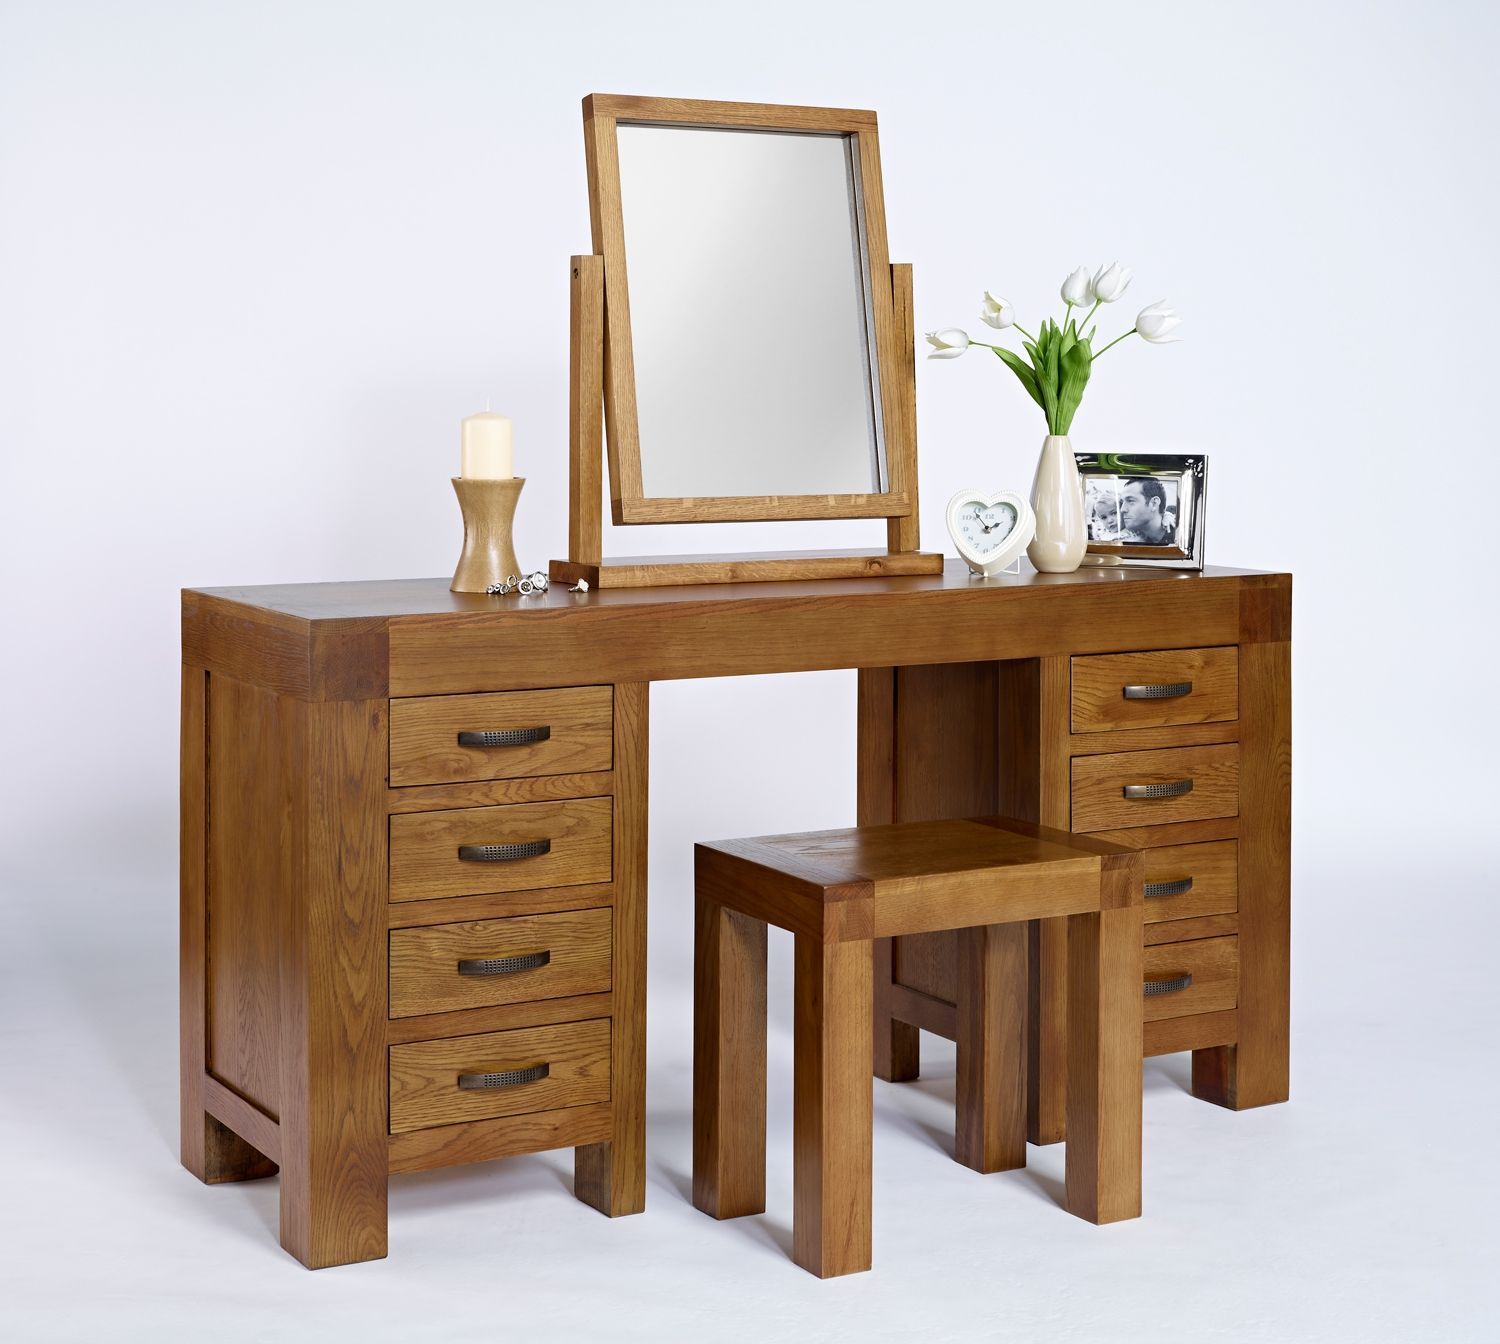 Santana Reclaimed Oak Dressing Table with 8 Drawers